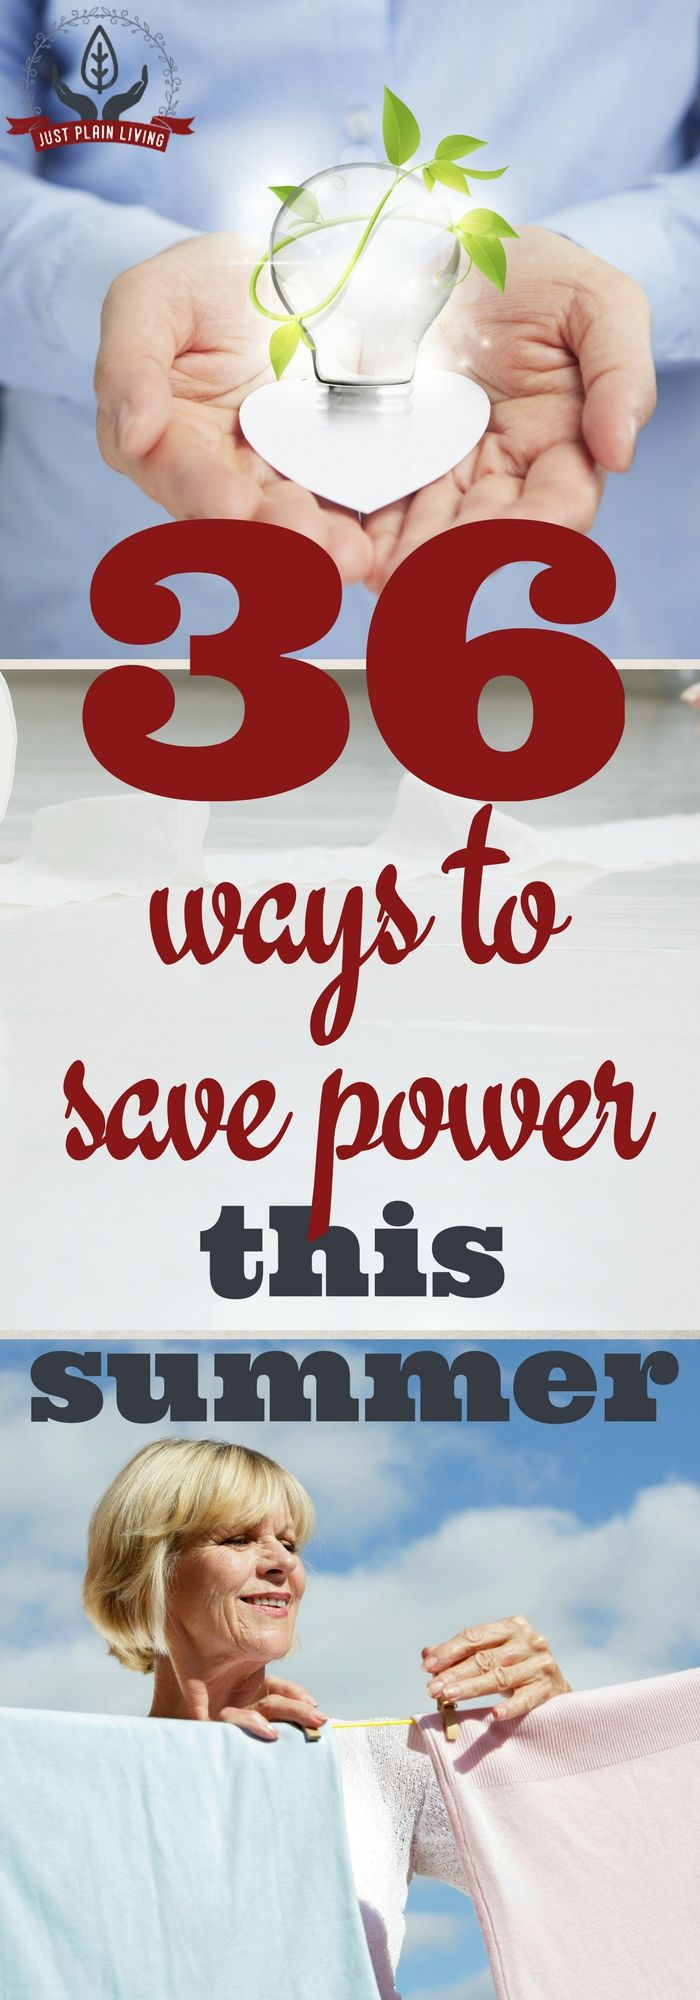 It is definitely possible to use less power even when it's hot outside. Check out these 36 ideas for lowering your power bill in the summer.